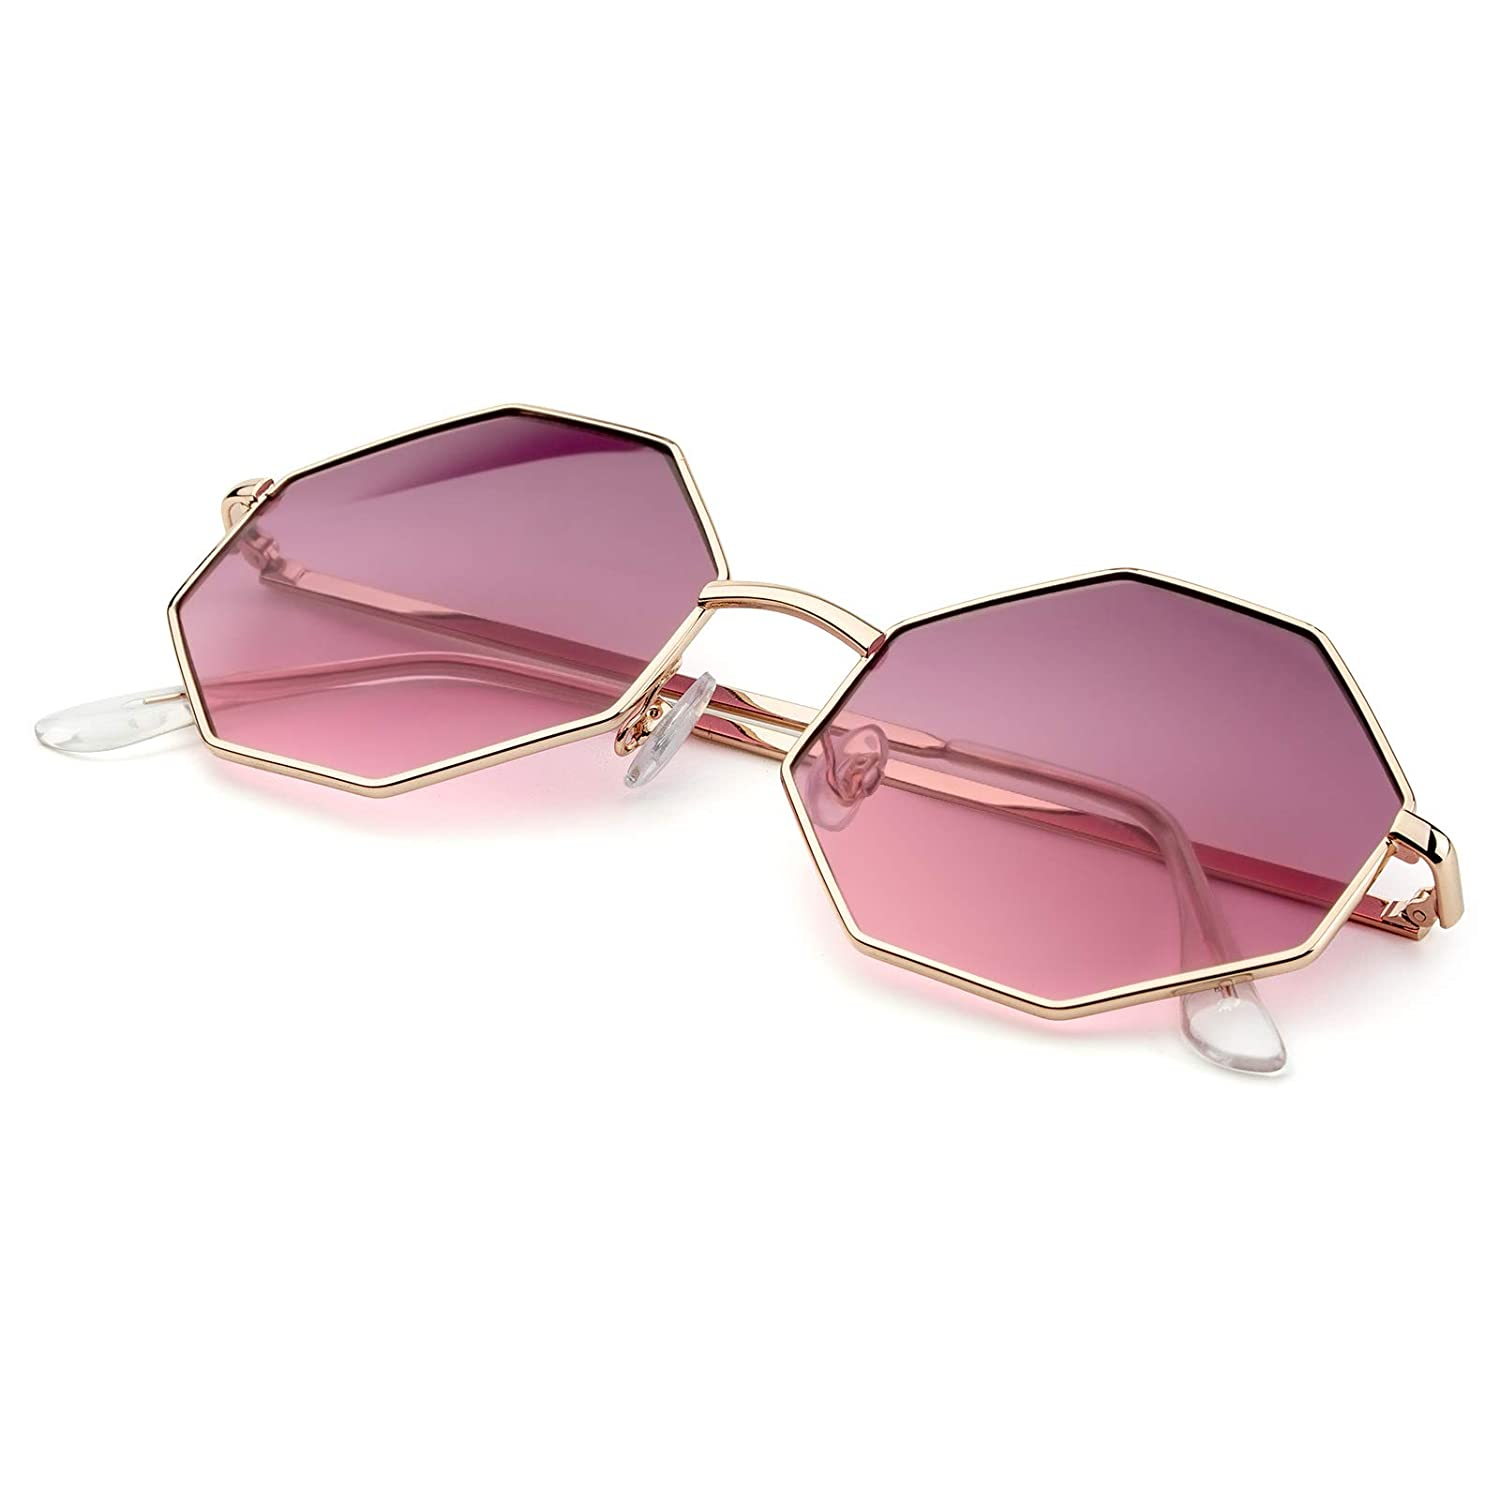 4386db1c97a Amazon.com  PINGLAS Hipster Polygon Sunglasses For Women Delicate Metal  Frame Candy Color UV400 Lens